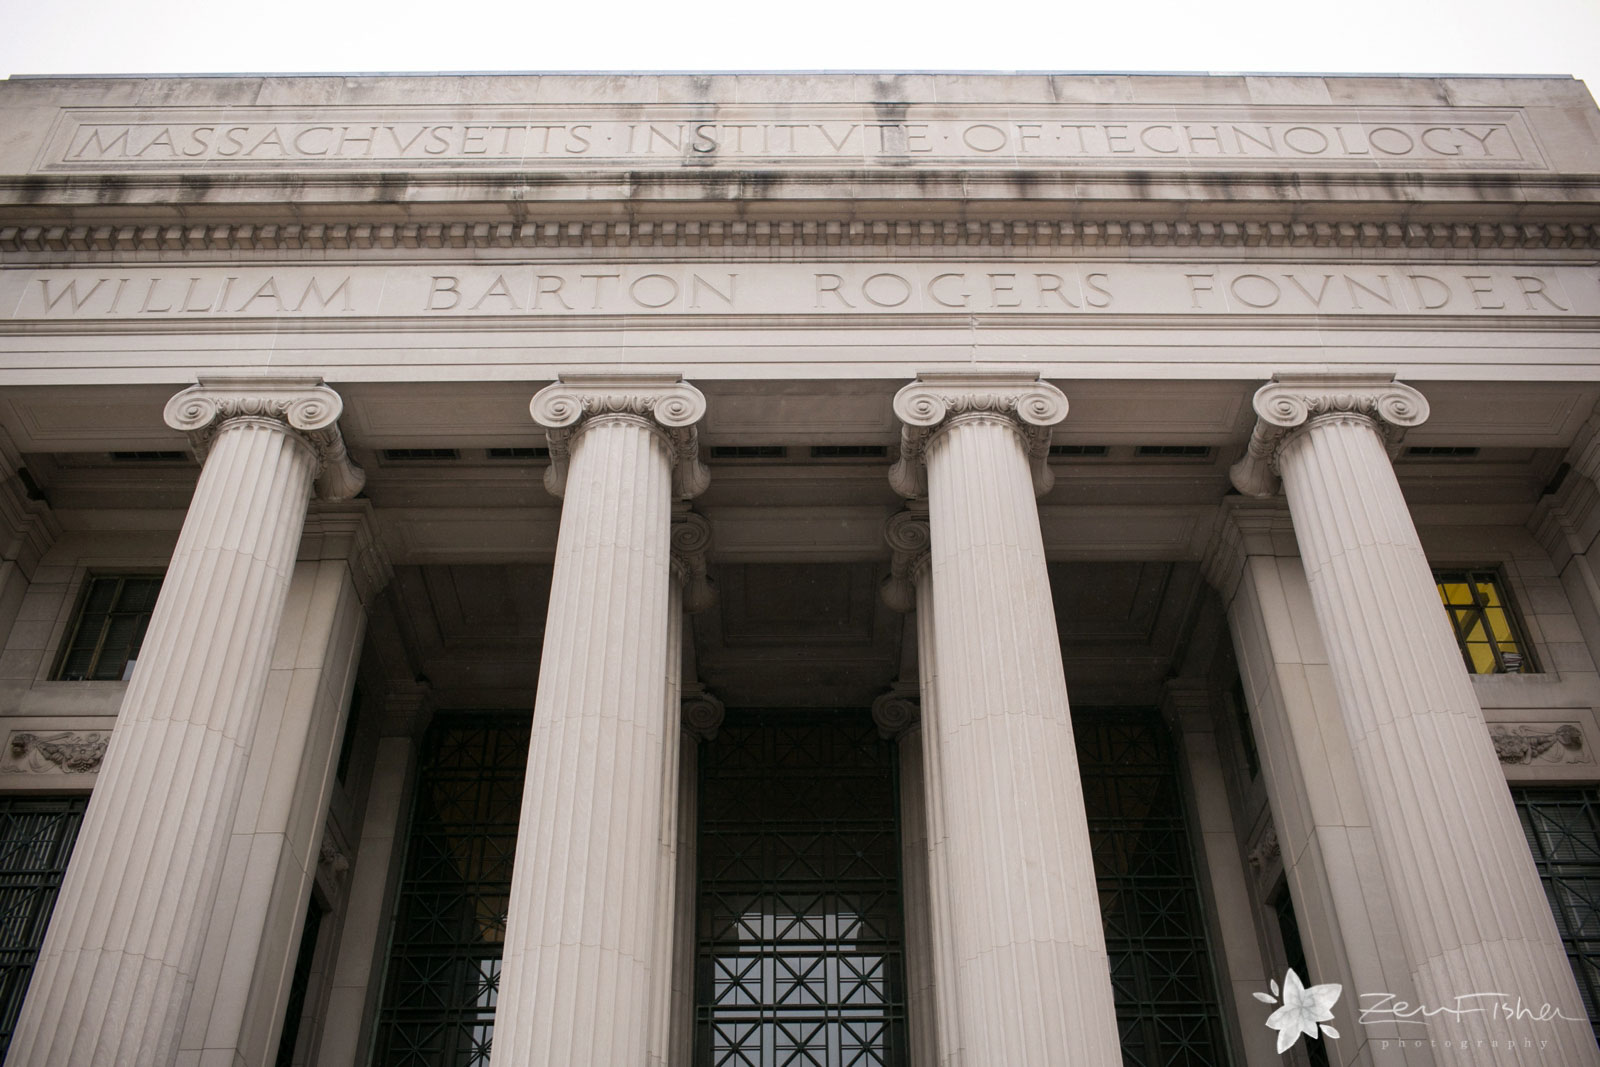 Looking up at the facade of building at MIT with large Roman columns.